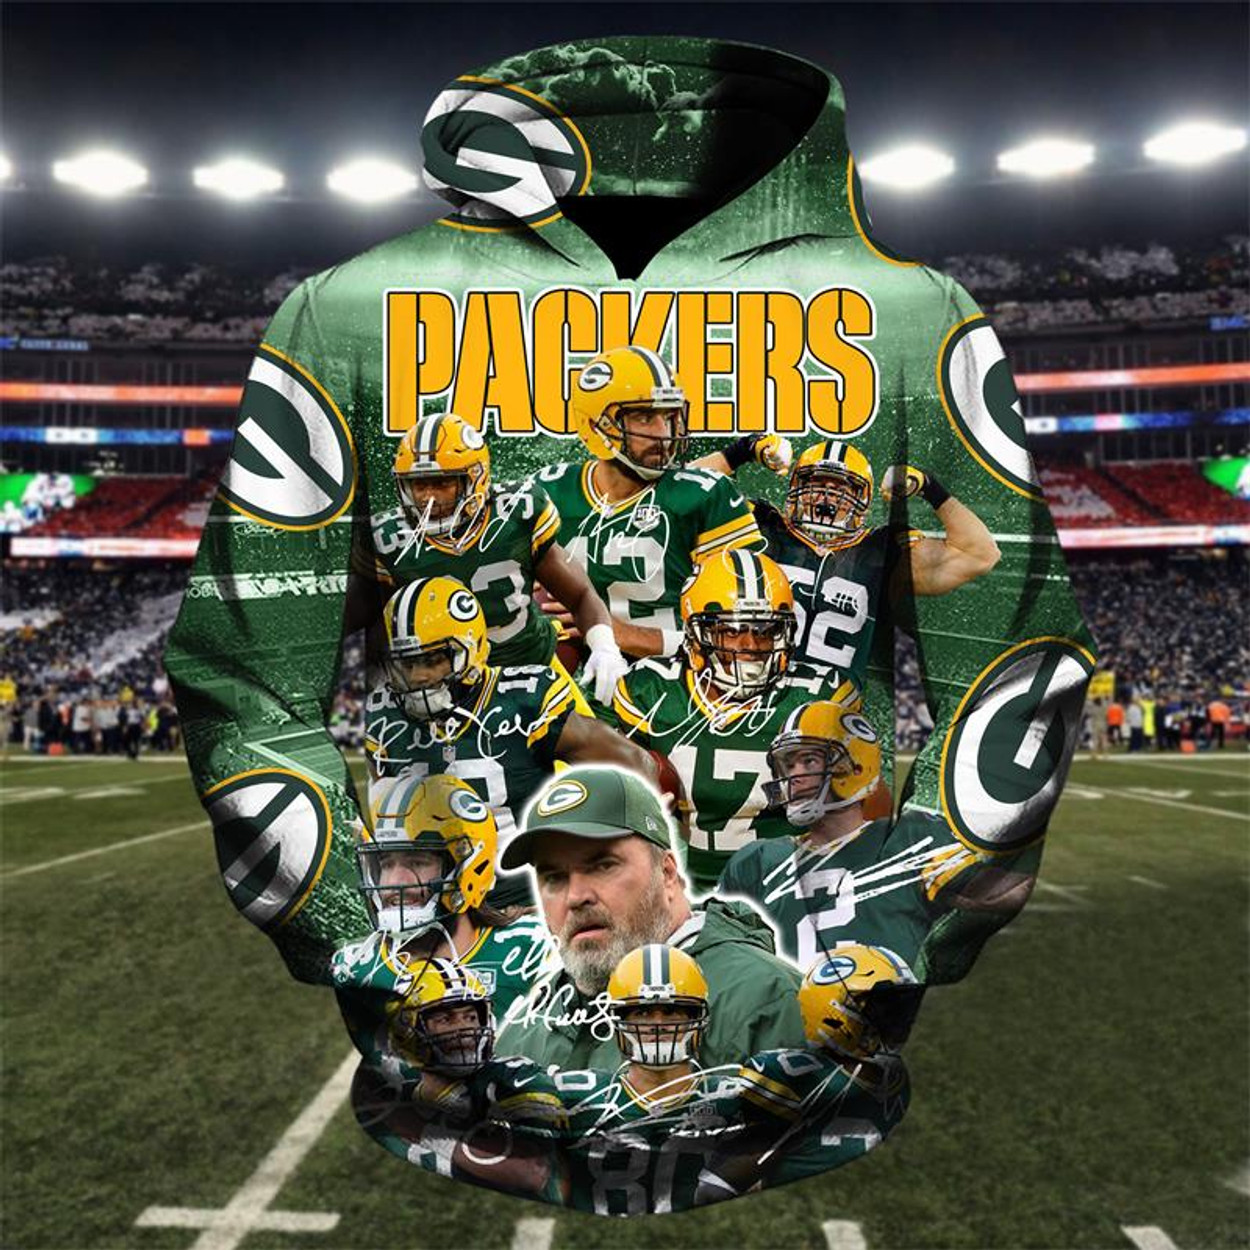 (OFFICIALLY-LICENSED-N.F.L.GREEN-BAY-PACKERS-TEAM-PULLOVER-HOODIES NICE- CUSTOM-3D-GRAPHIC-PRINTED-DOUBLE-SIDED-ALL-OVER-DESIGN ... a7fd075ff